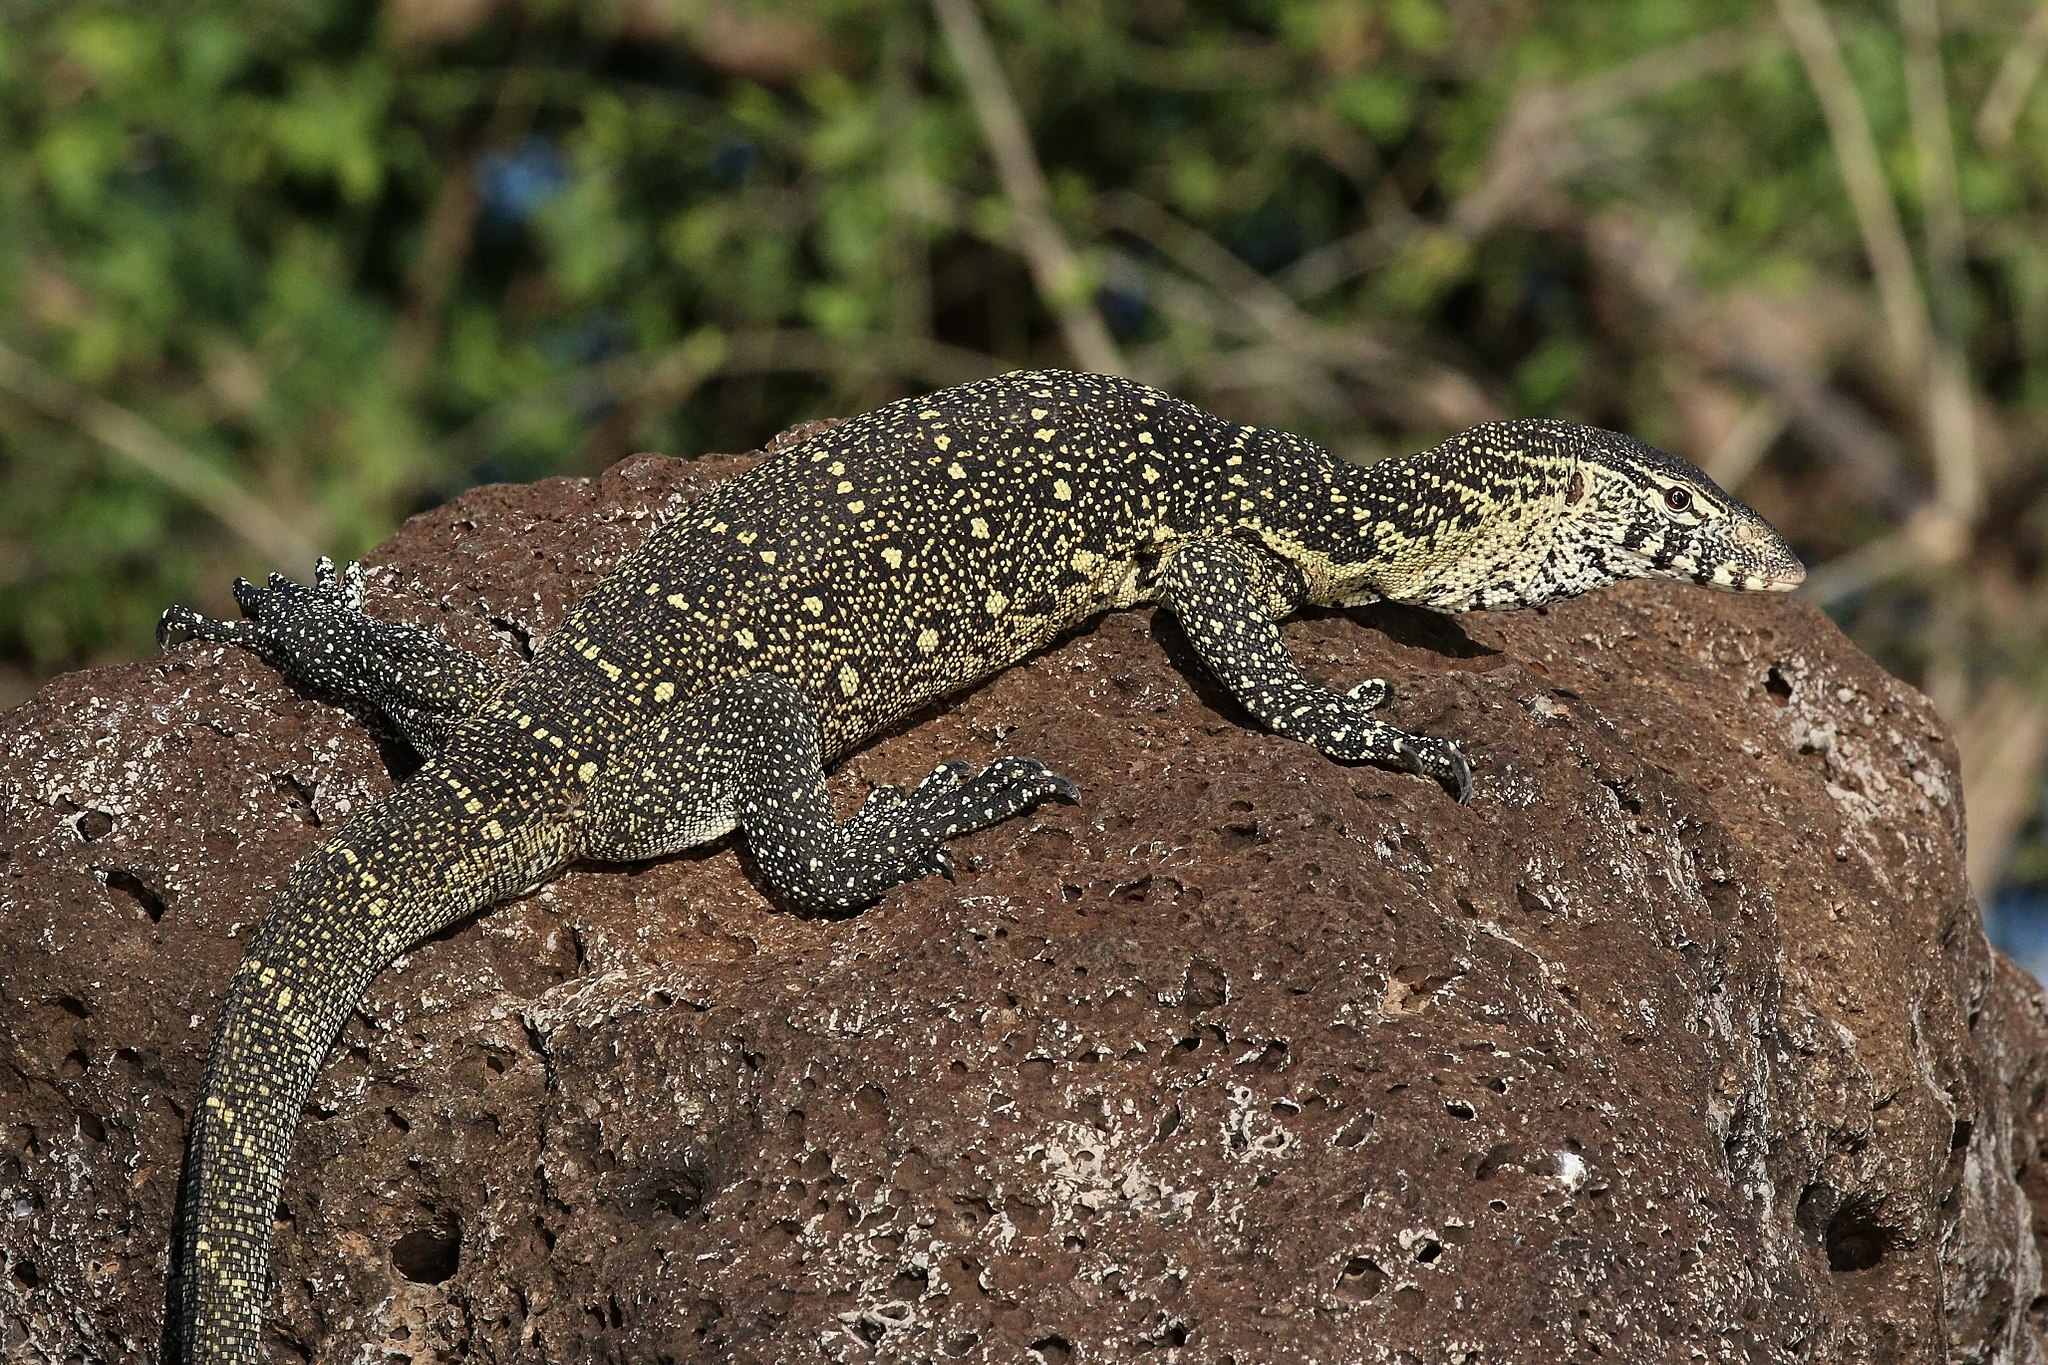 African Reptiles List, Pictures & Facts: Amazing Reptiles ...